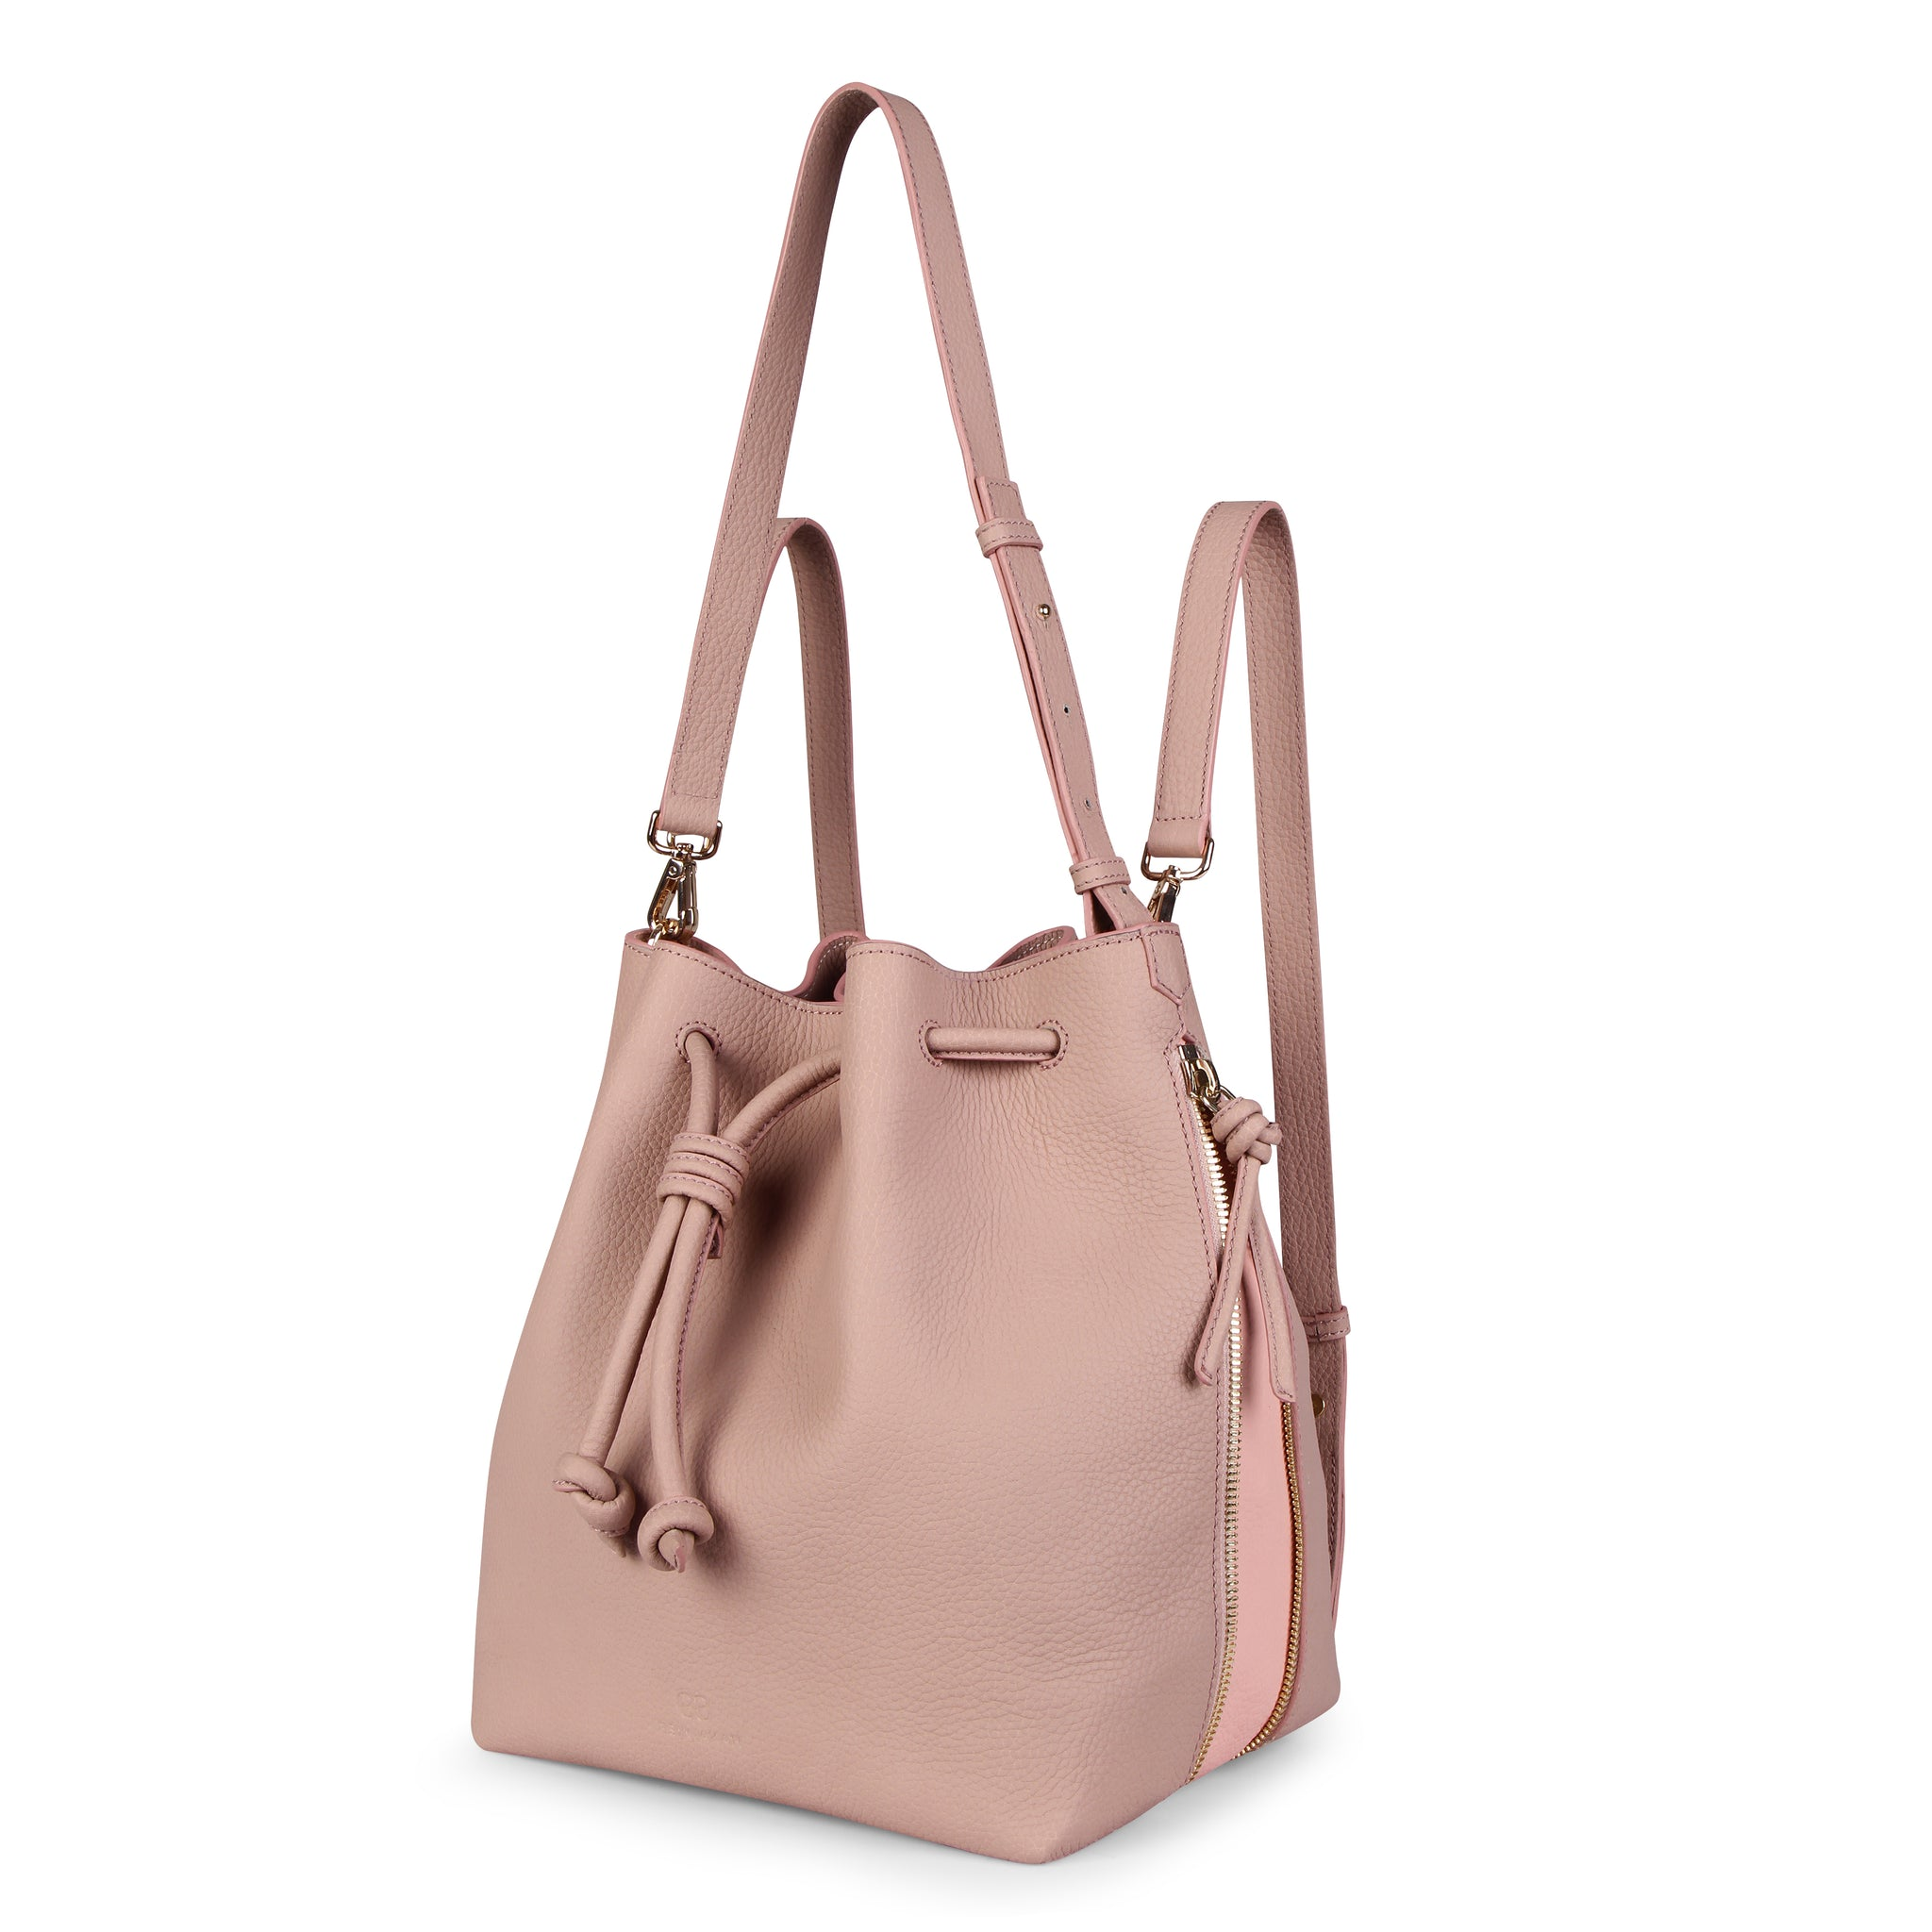 A convertible laptop size womens leather backpack in pink that could be used as a crossbody as well as a bucket bag, front image.